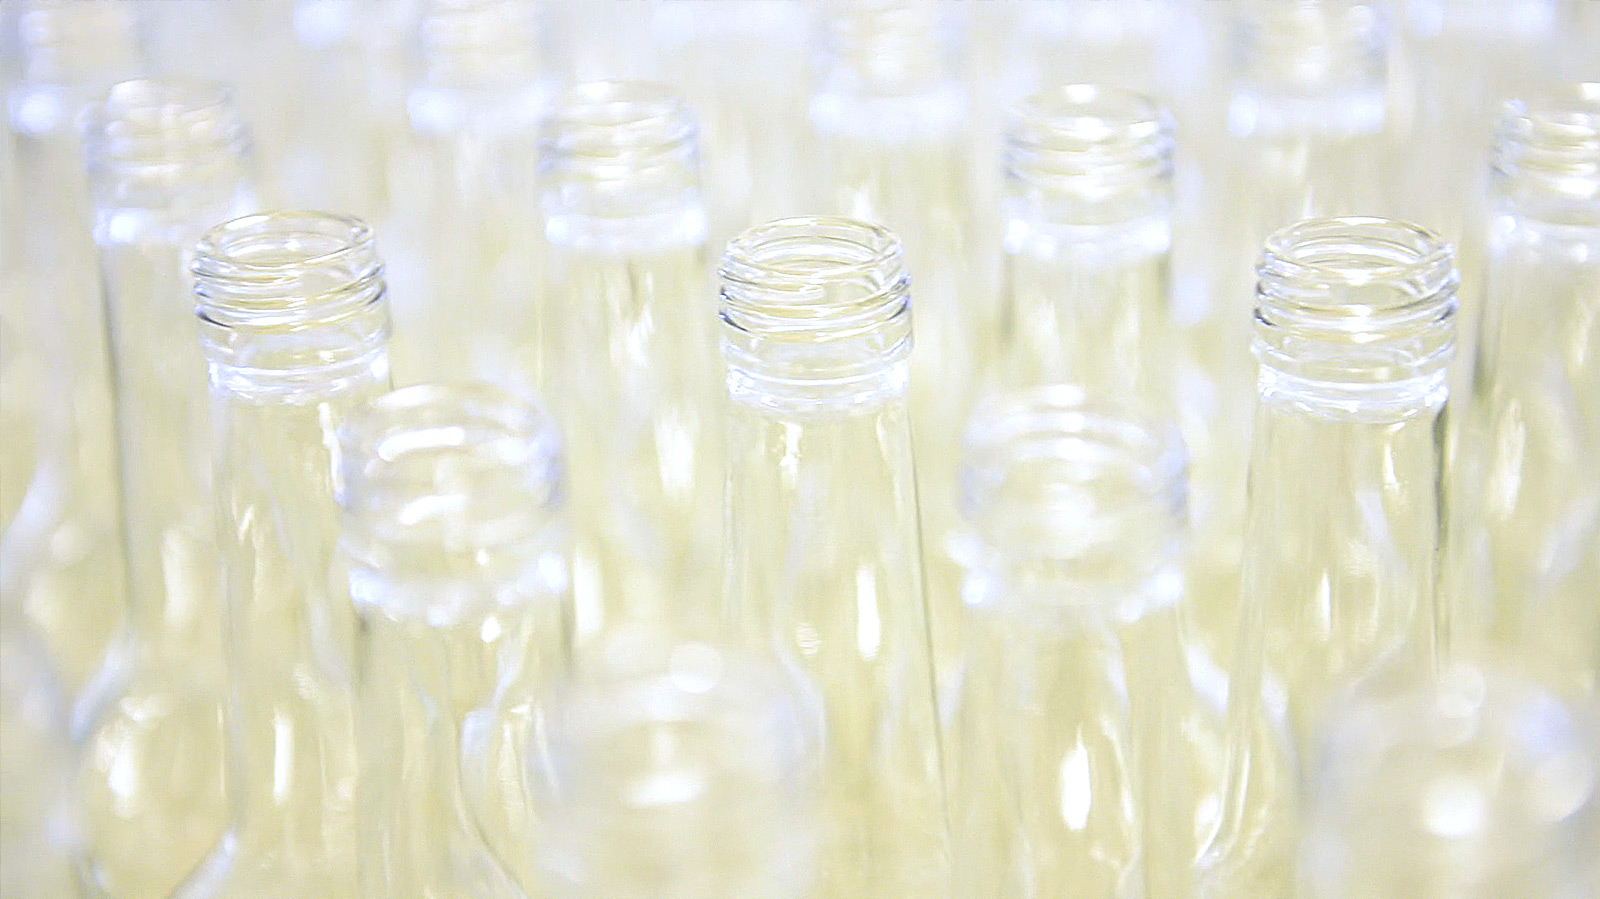 Birch sap - bottles